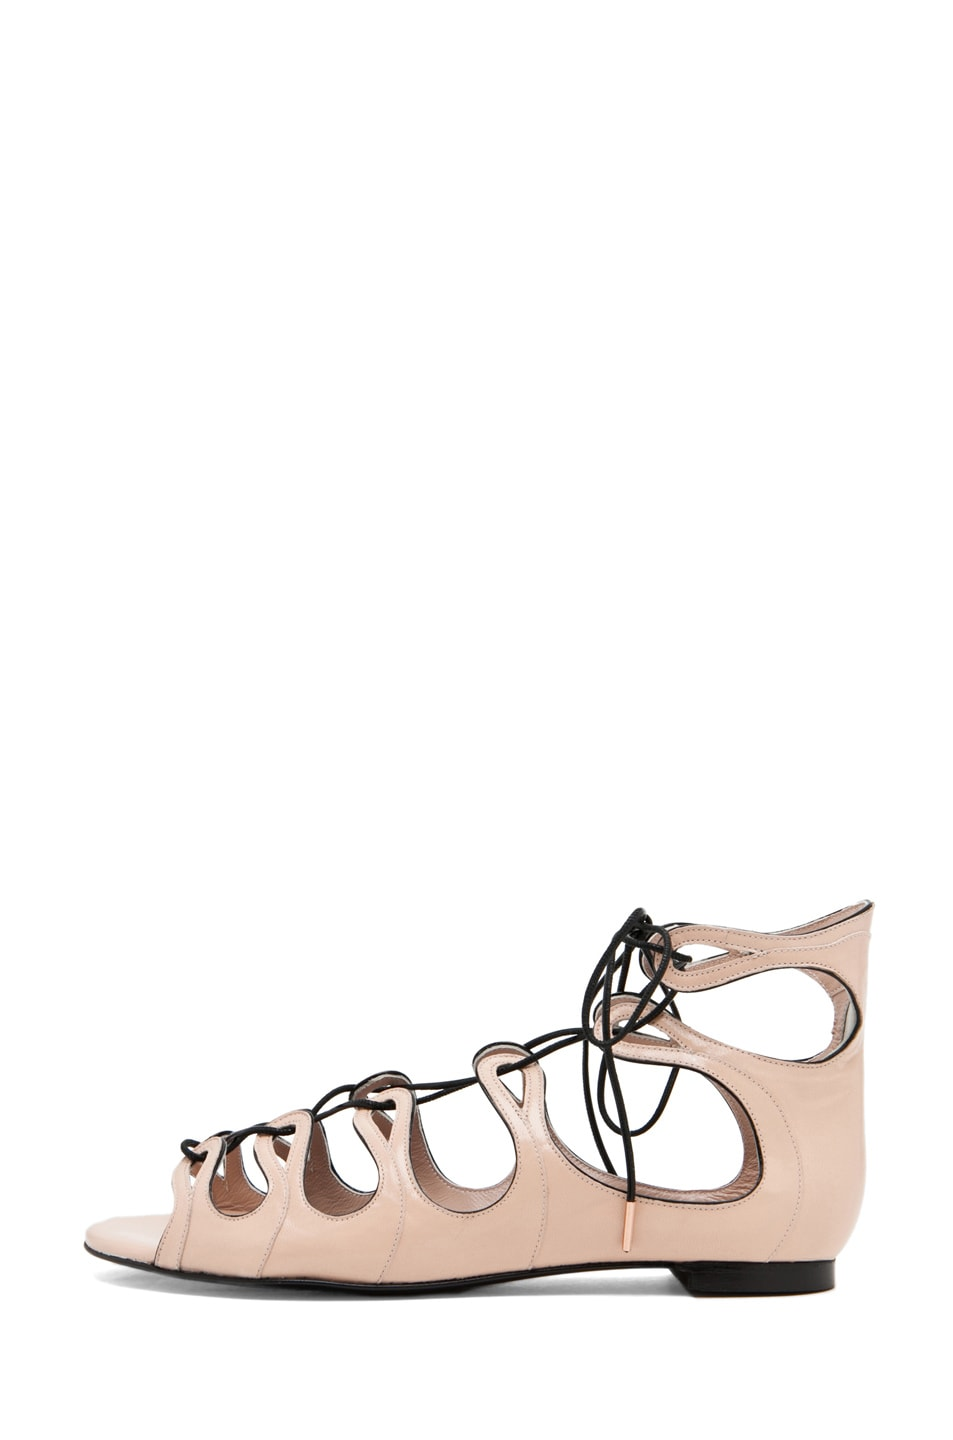 Image 1 of Alexander McQueen Lace Up Sandal in Saraband/Black